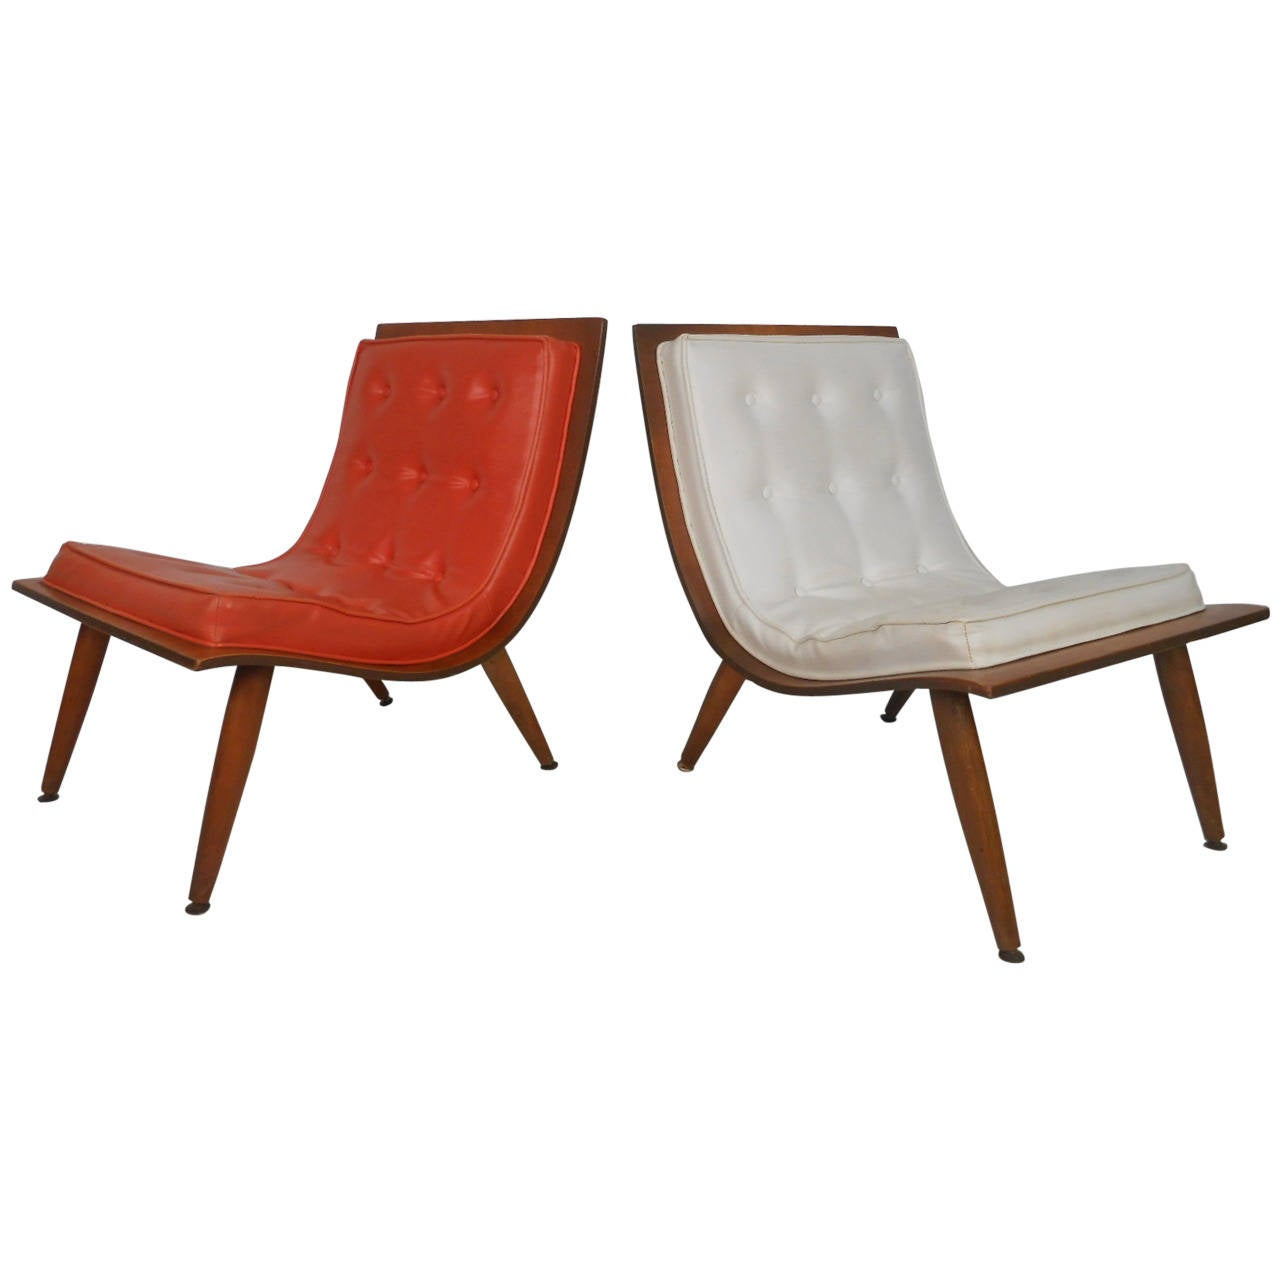 Bentwood Scoop Chair by Carter Brothers For Sale at 1stdibs